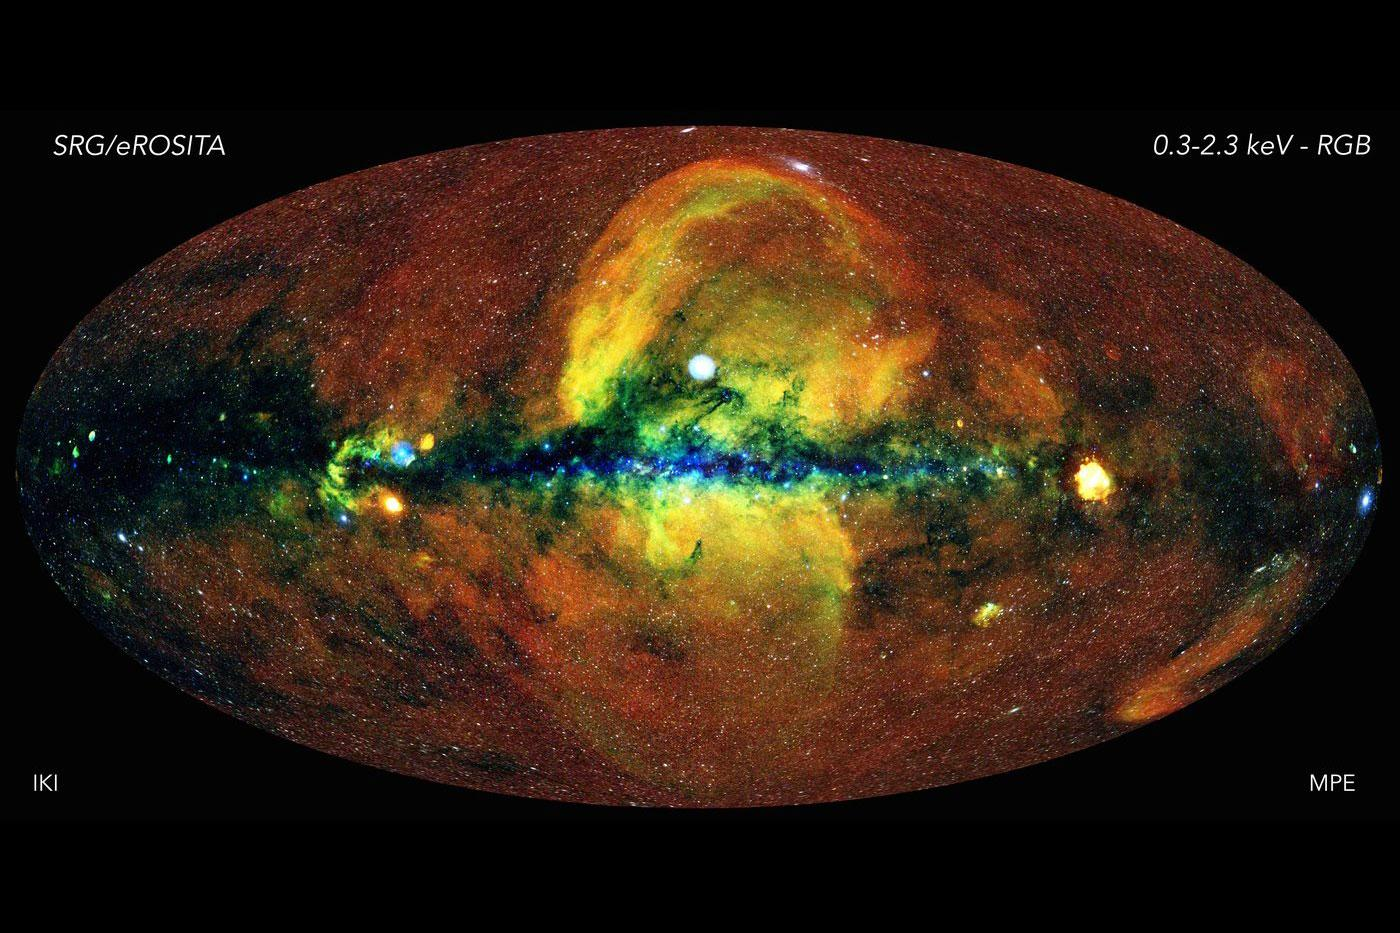 X-ray image of the Milky Way galaxy, taken by the eROSITA X-ray telescope